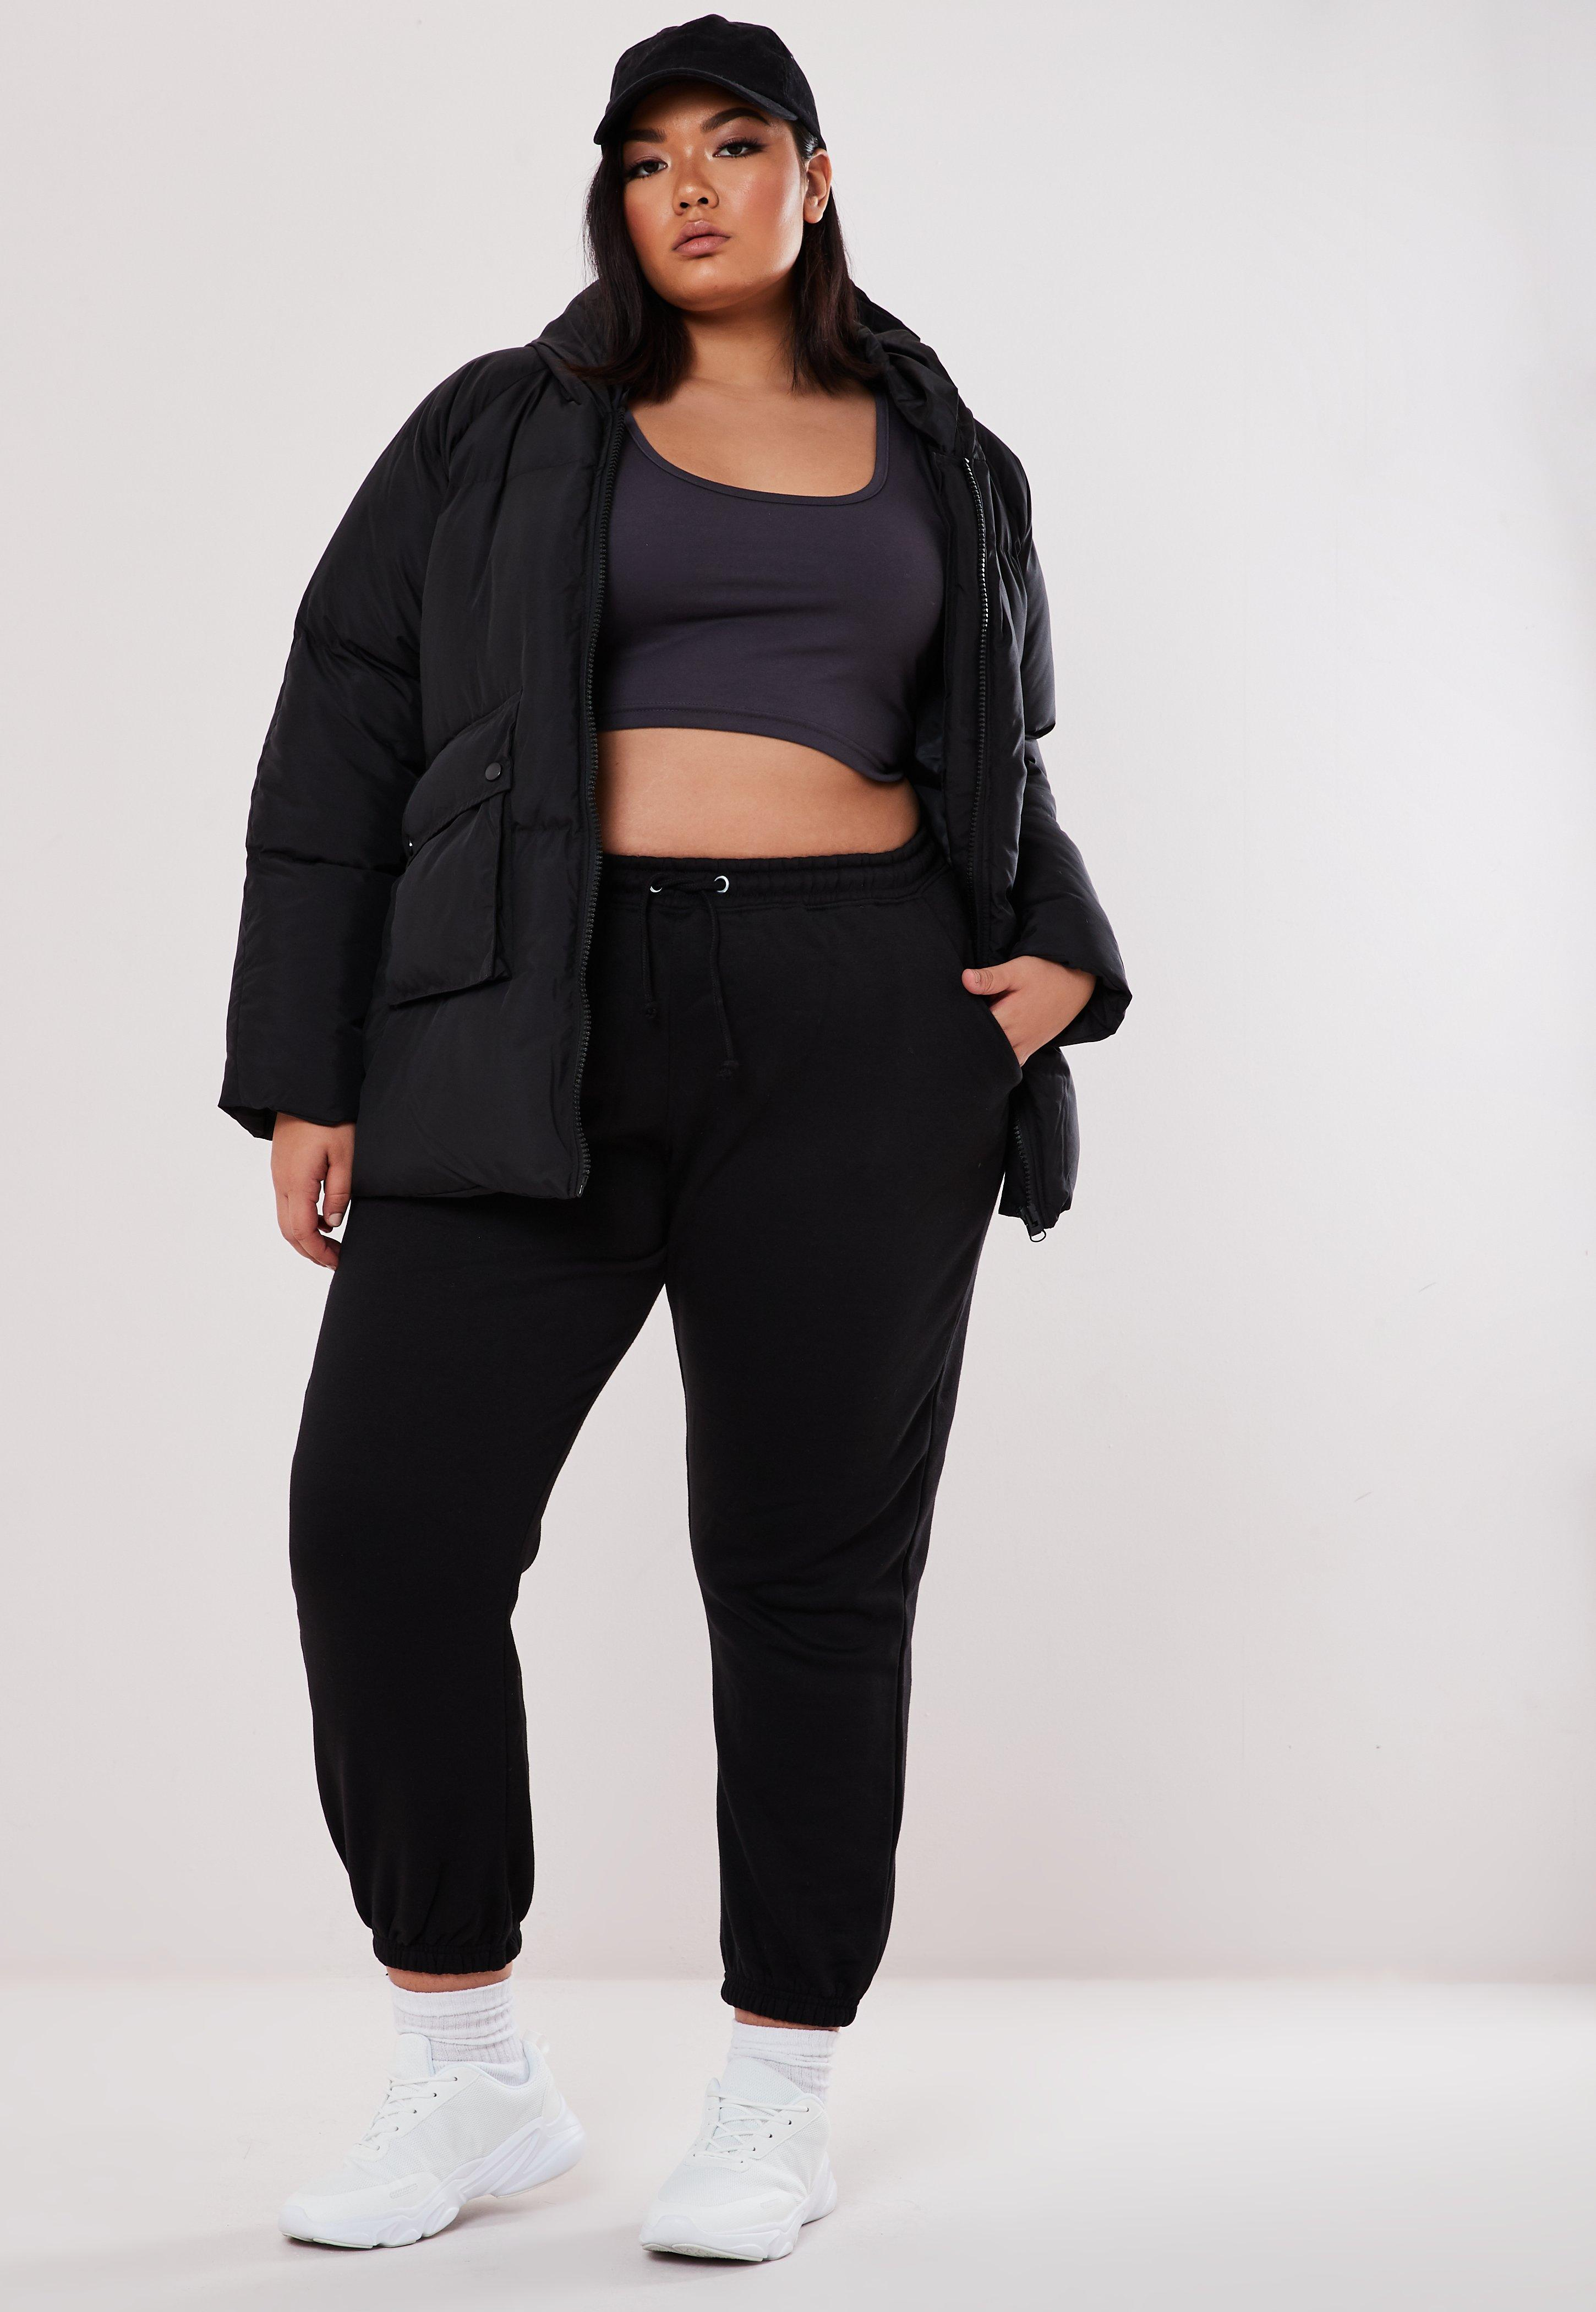 fe0dfd80bf Joggers | Sweatpants for Women - Missguided